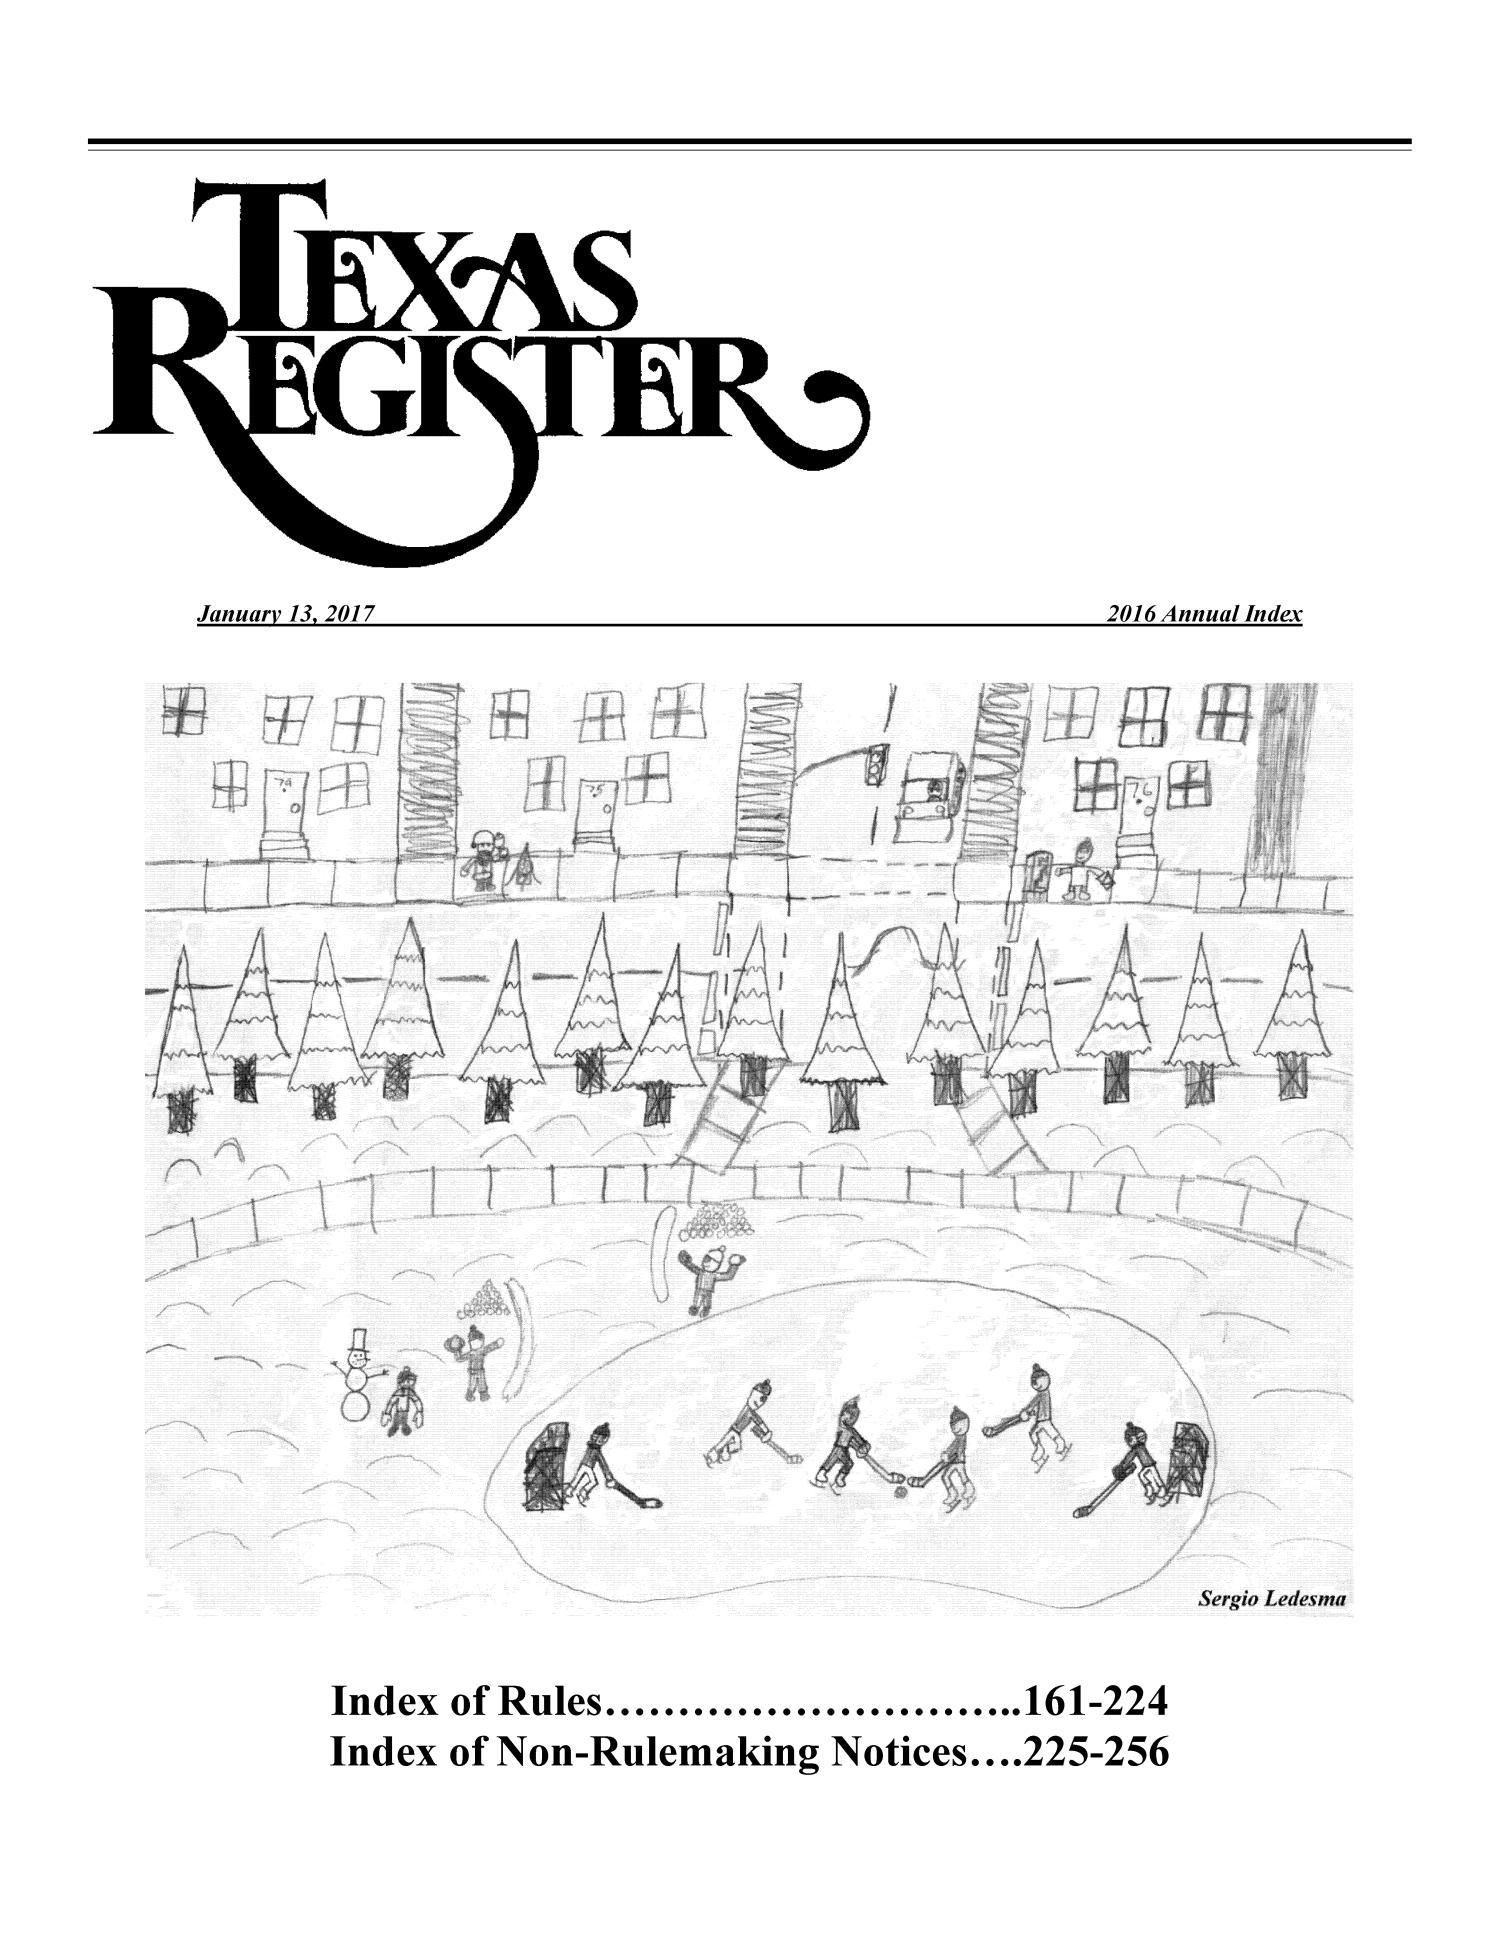 Texas Register: 2016 Annual Index, Index of Rules, Pages